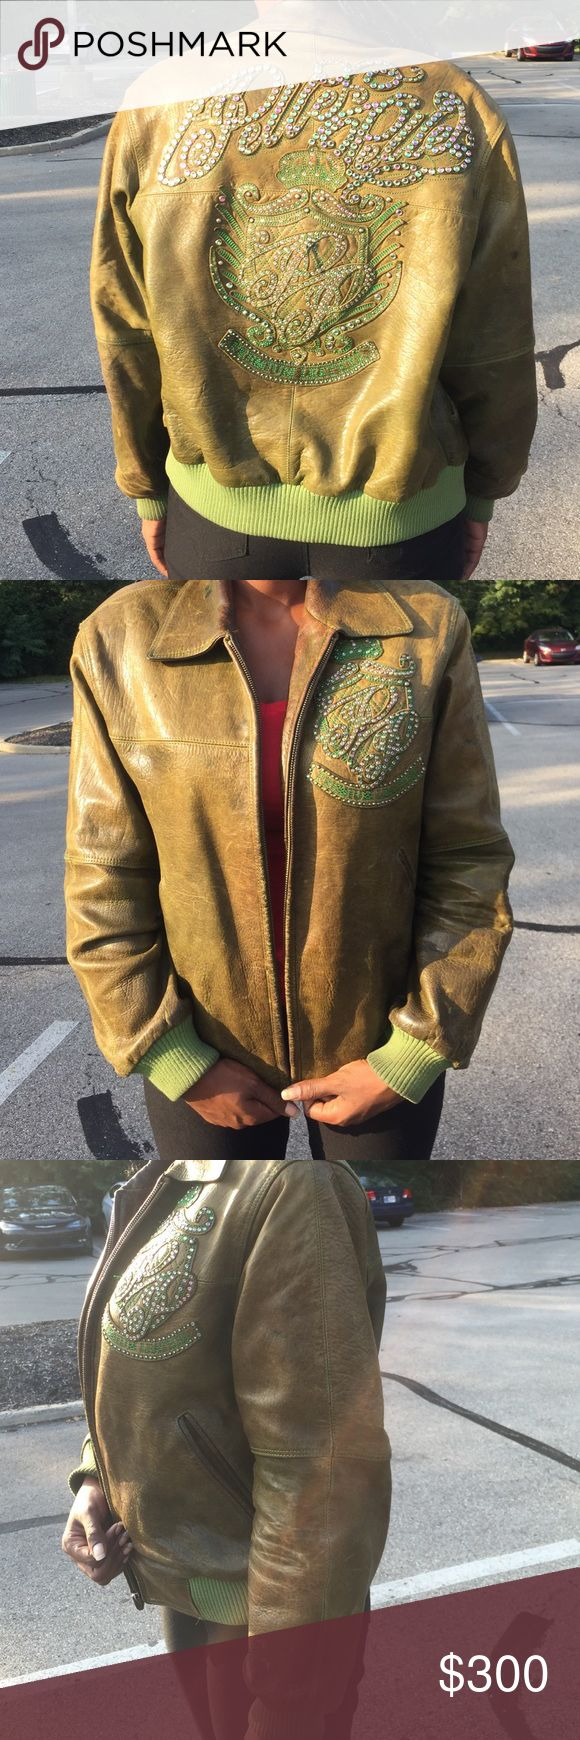 Women's pelle pelle leather jacket Size 10 100% leather women's  pelle pelle jacket...Good condition ! Needs cleaning and inside lining ripped but can be repaired.zipper needs to be repaired. Jackets & Coats